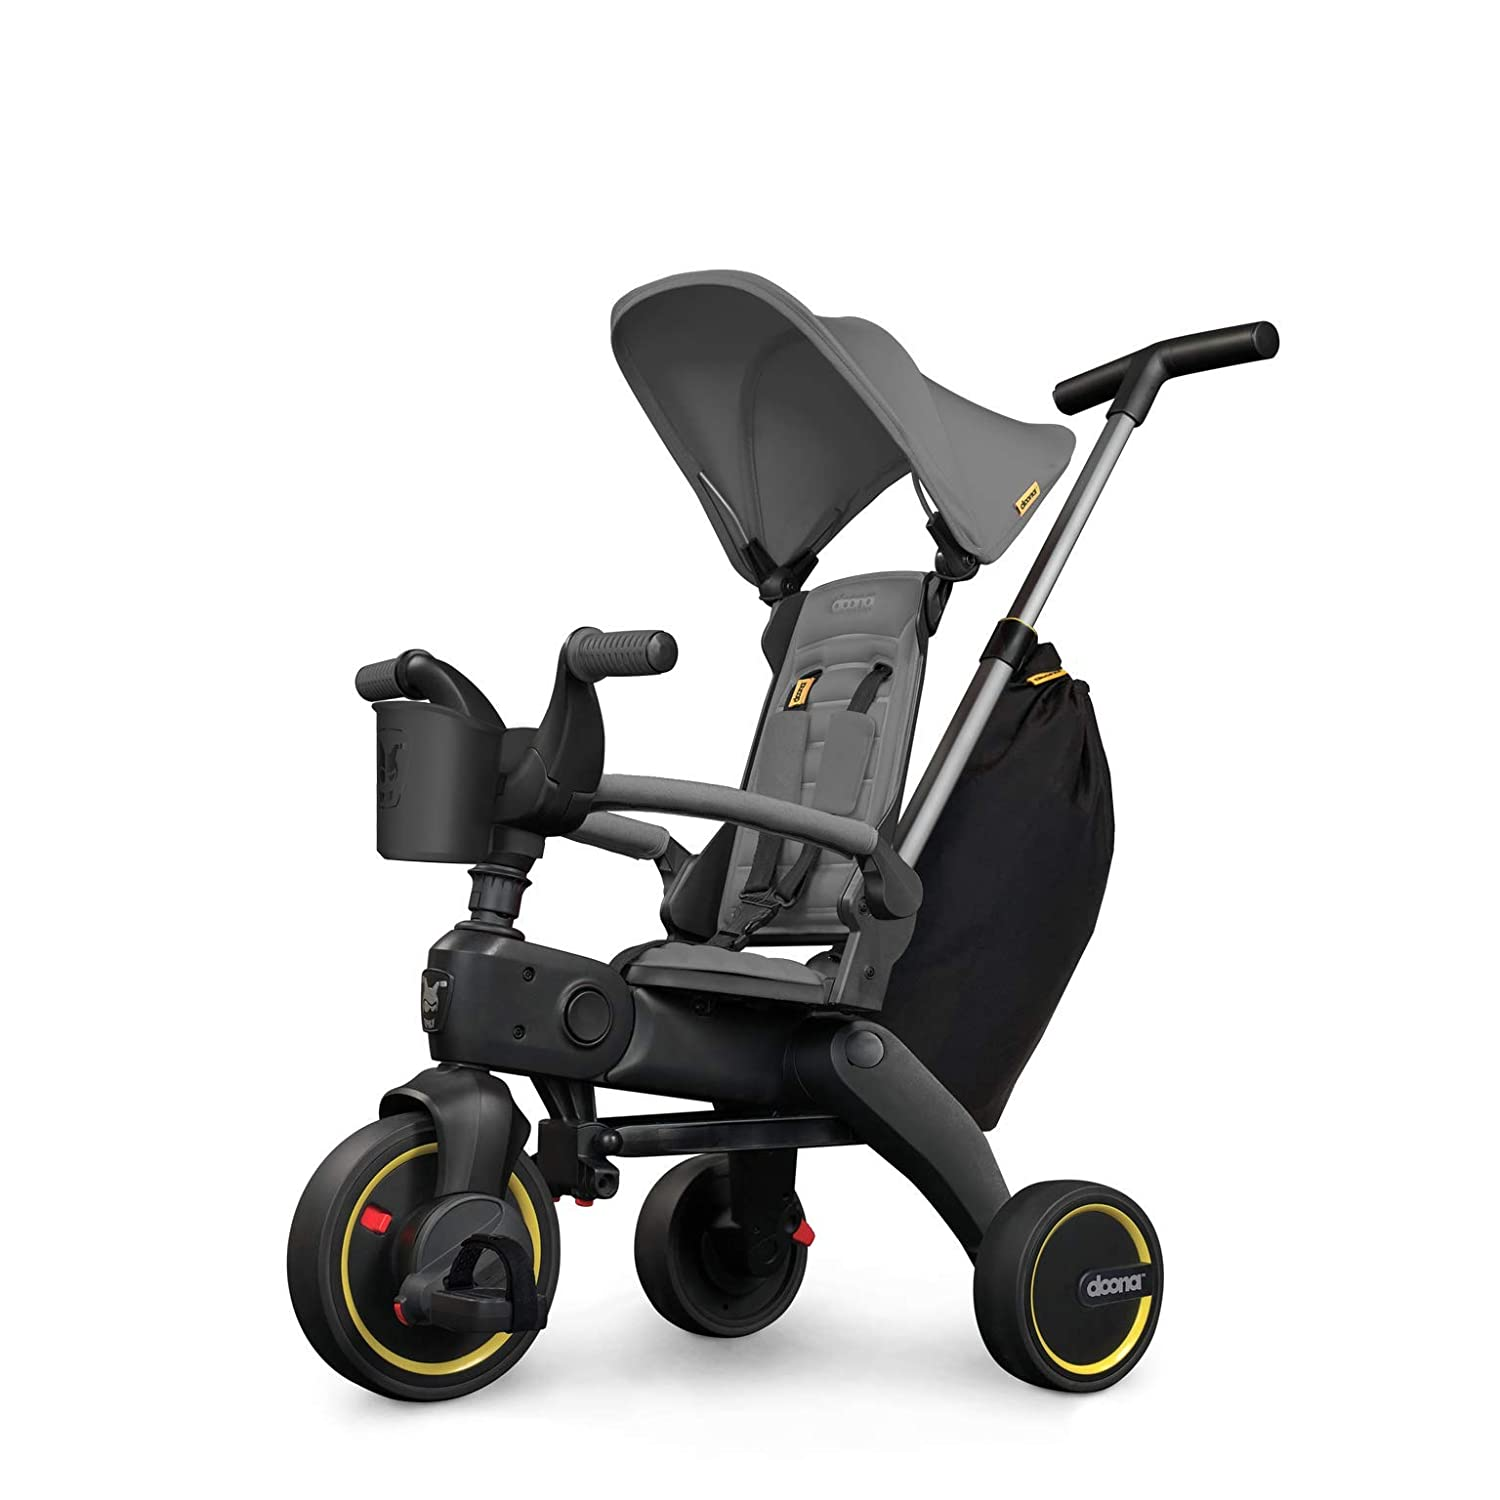 Doona Liki Trike S3 - Premium Foldable Push Trike and Kid's Tricycle for Ages 10 Months to 3 Years, Grey Hound